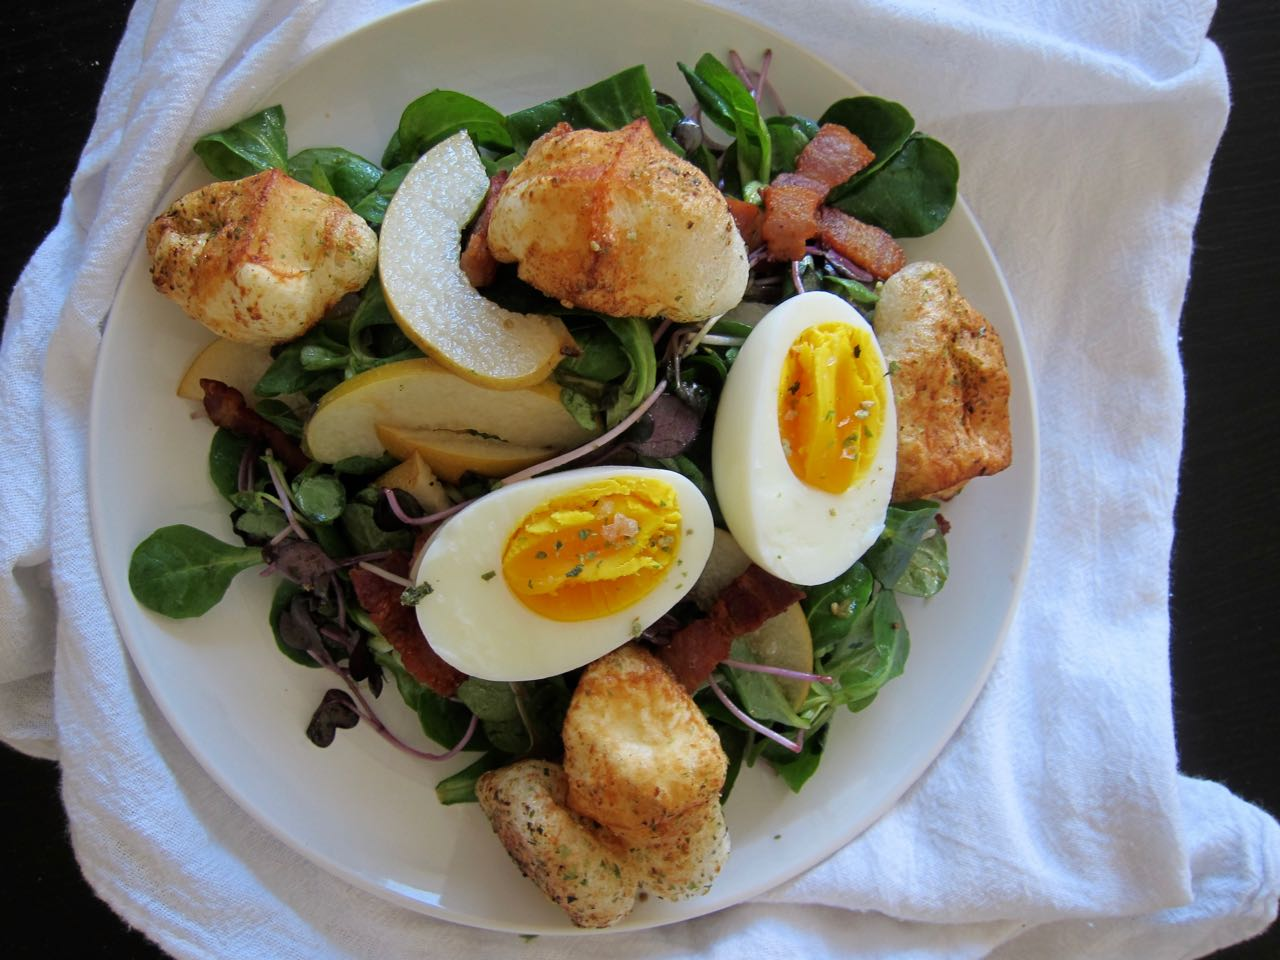 Asian Pear & Bacon Salad with Furikake Mochi Croutons